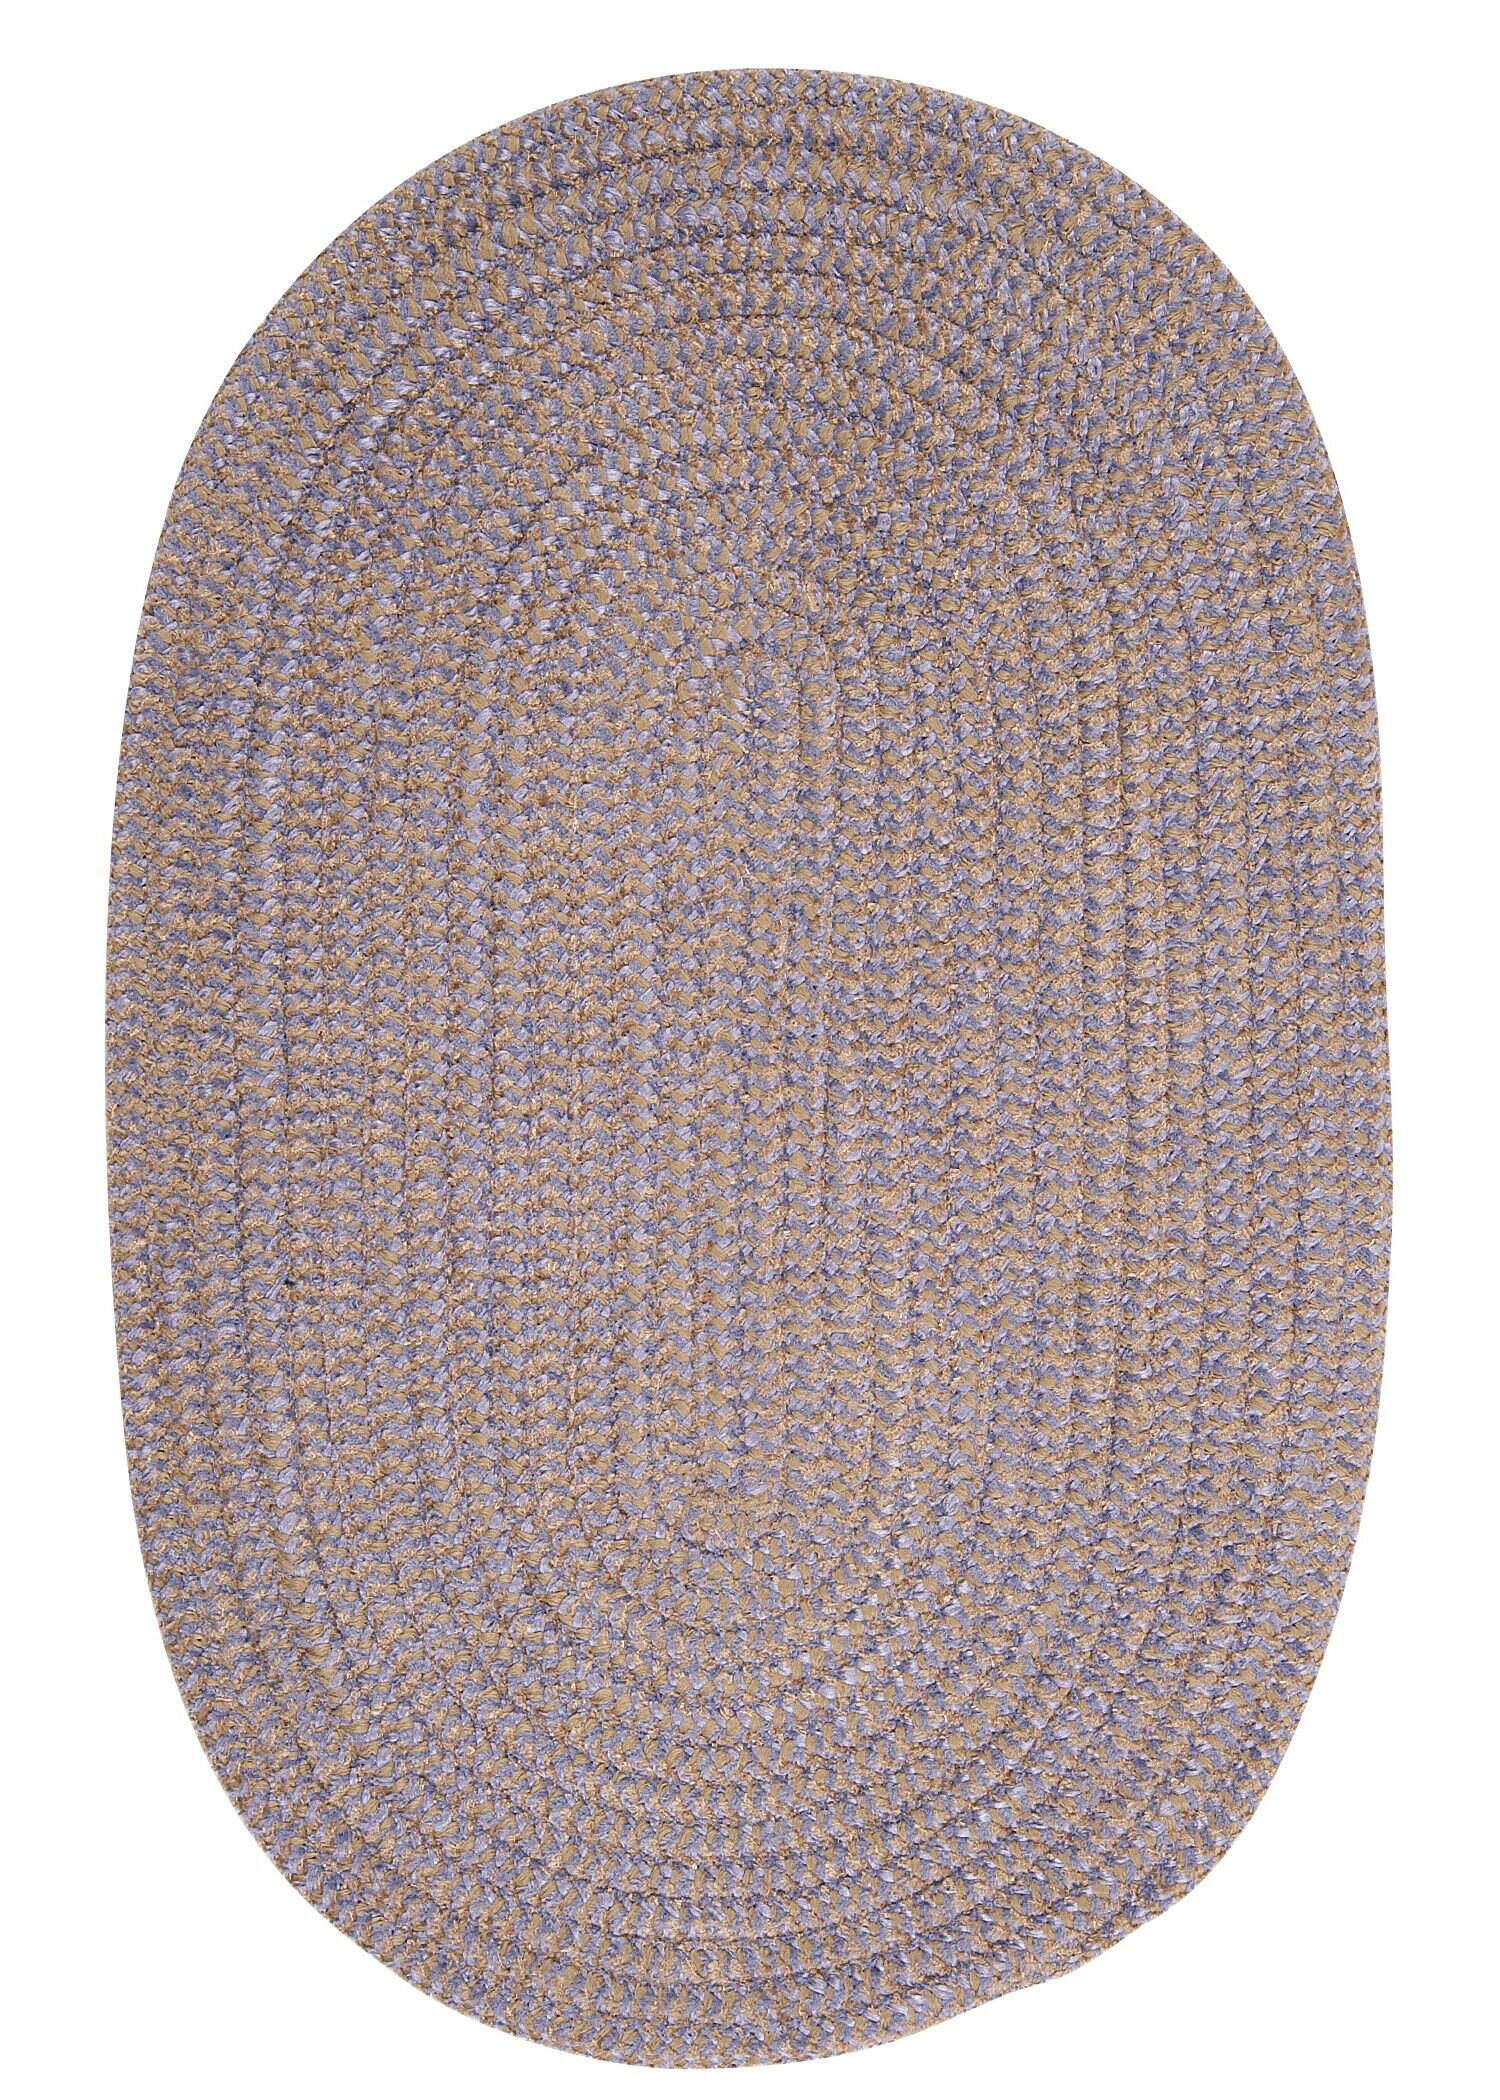 Hale Amethyst Check Indoor/Outdoor Area Rug Rug Size: Oval 3' x 5'